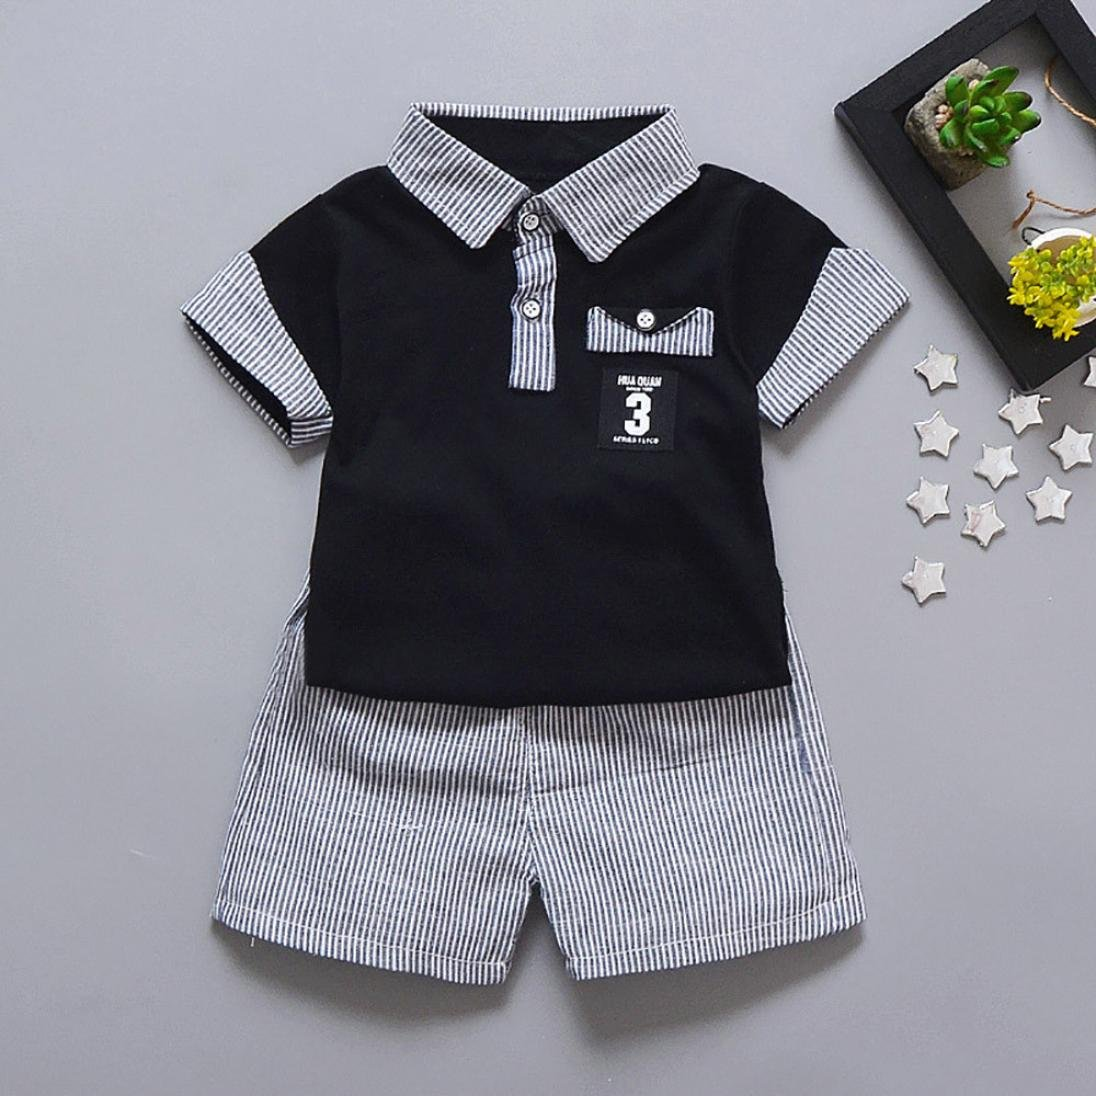 0.5-3 year 18-24 month, White Baby Boys Summer Clothes HEHEM 2PC Toddler Kids Baby Boy Letter Printed T shirt Tops+Striped Shorts Outfits